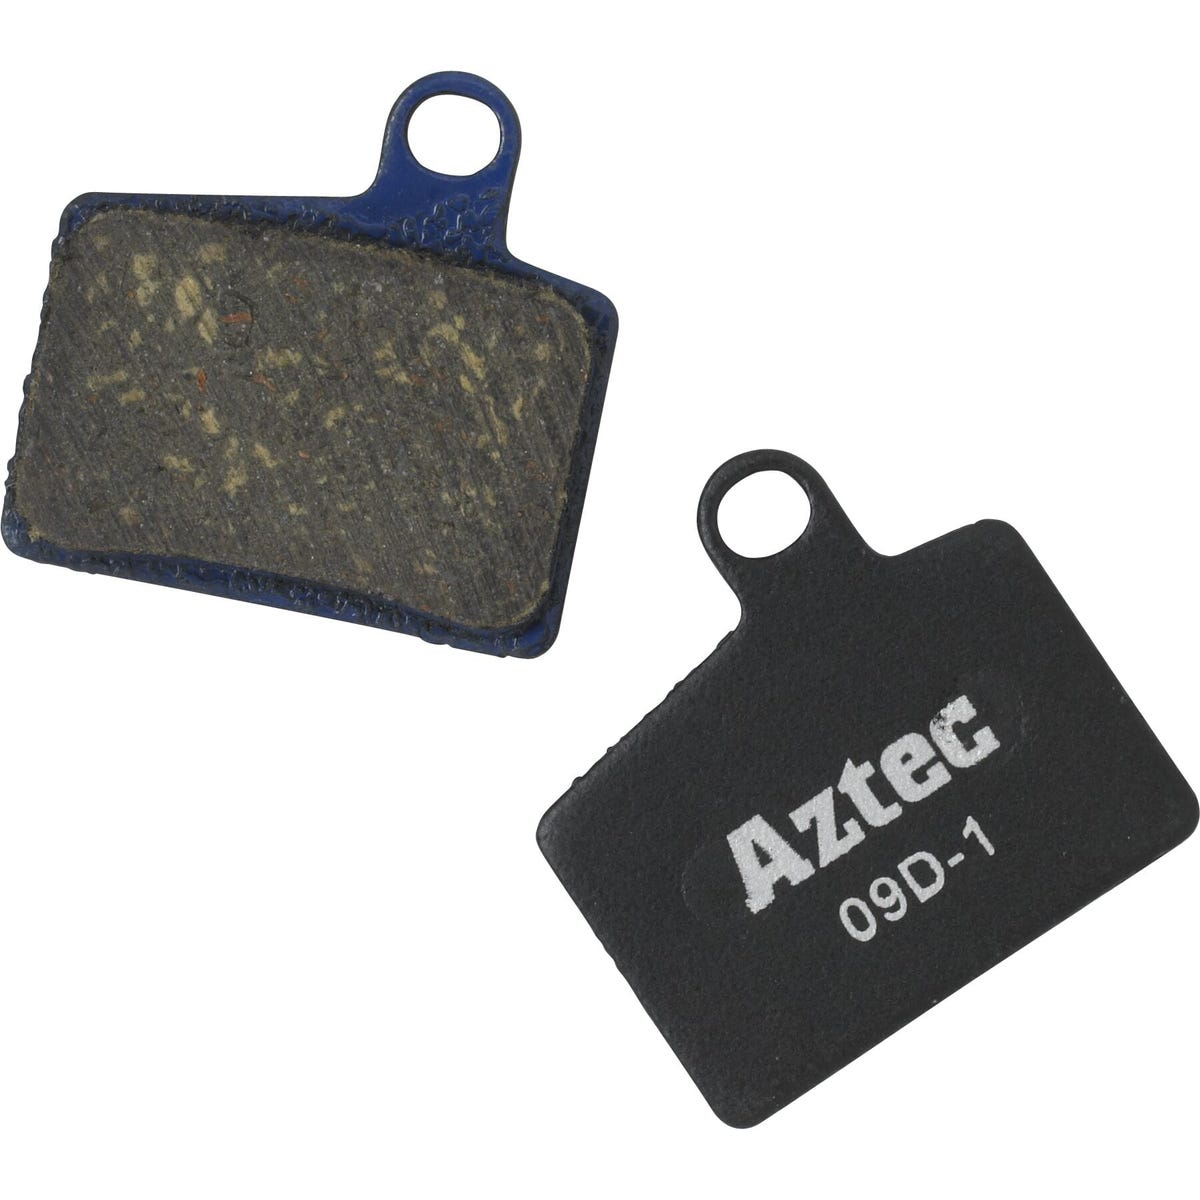 Aztec Organic disc brake pads for Hayes Stroker Ryde